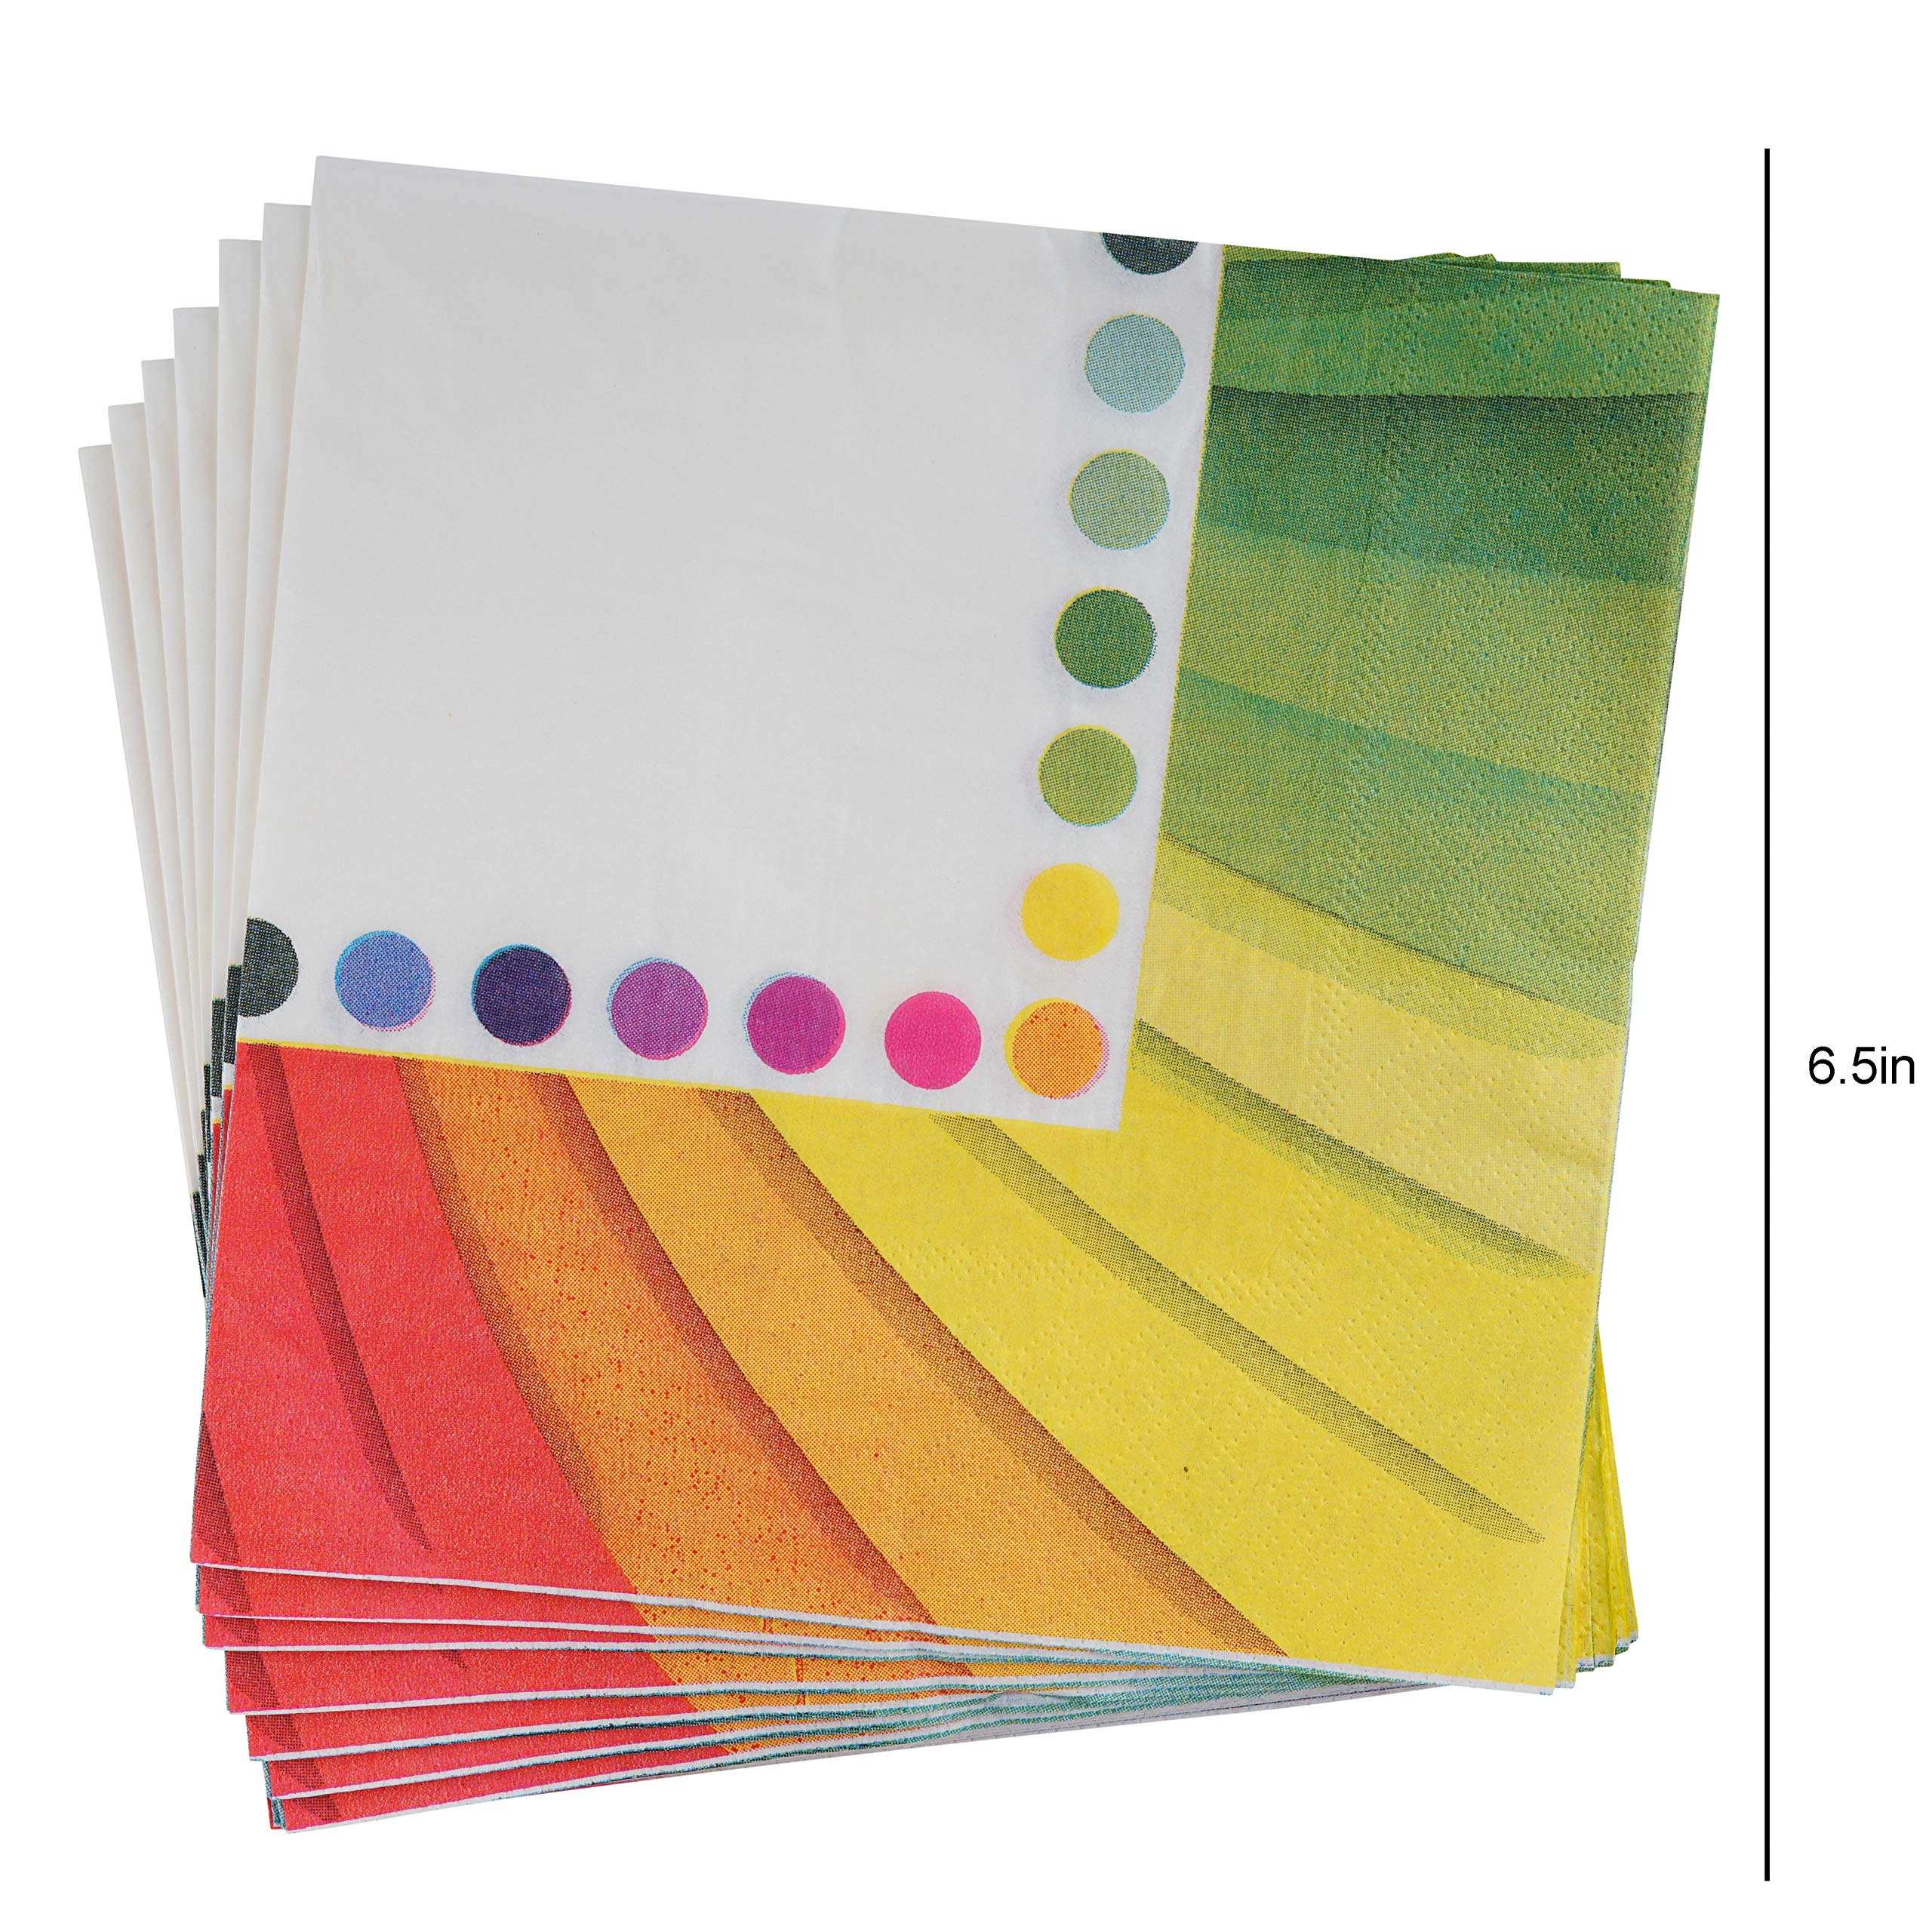 82 Piece Rainbow Party Set Including Banner, Plates, Cups, Napkins and Tablecloth, Serves 20 by Scale Rank (Image #6)